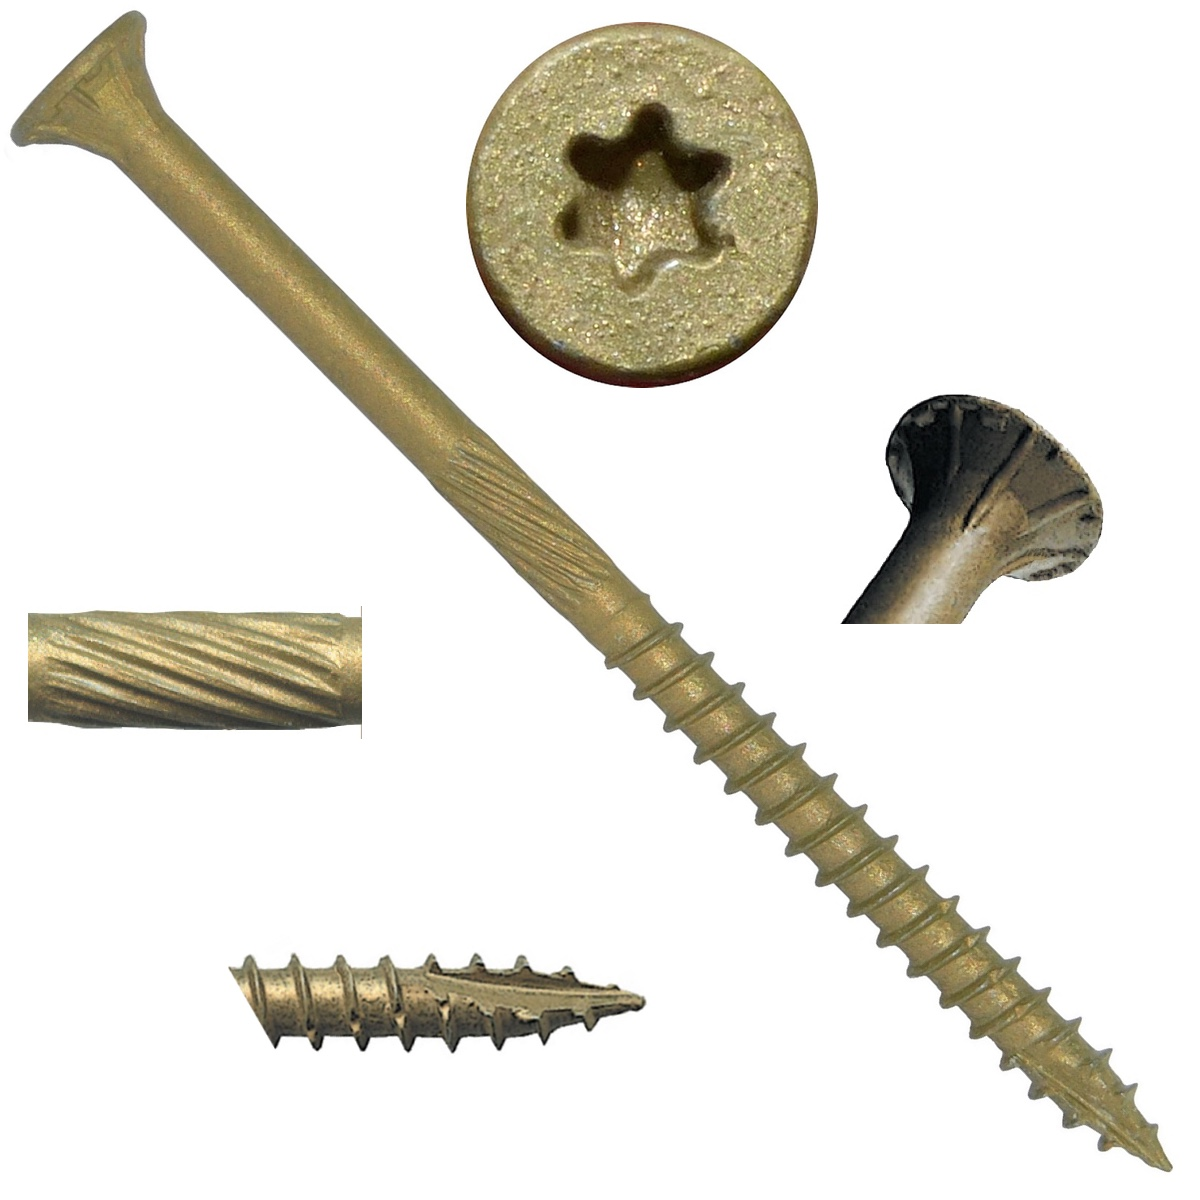 "#9 x 3"" Bronze Star Exterior Coated Wood Screw Torx/Star Drive Head (1 POUND - 79 Approx. Screw Count) - Multipurpose Exterior Coated Torx/Star Drive Wood Screws"